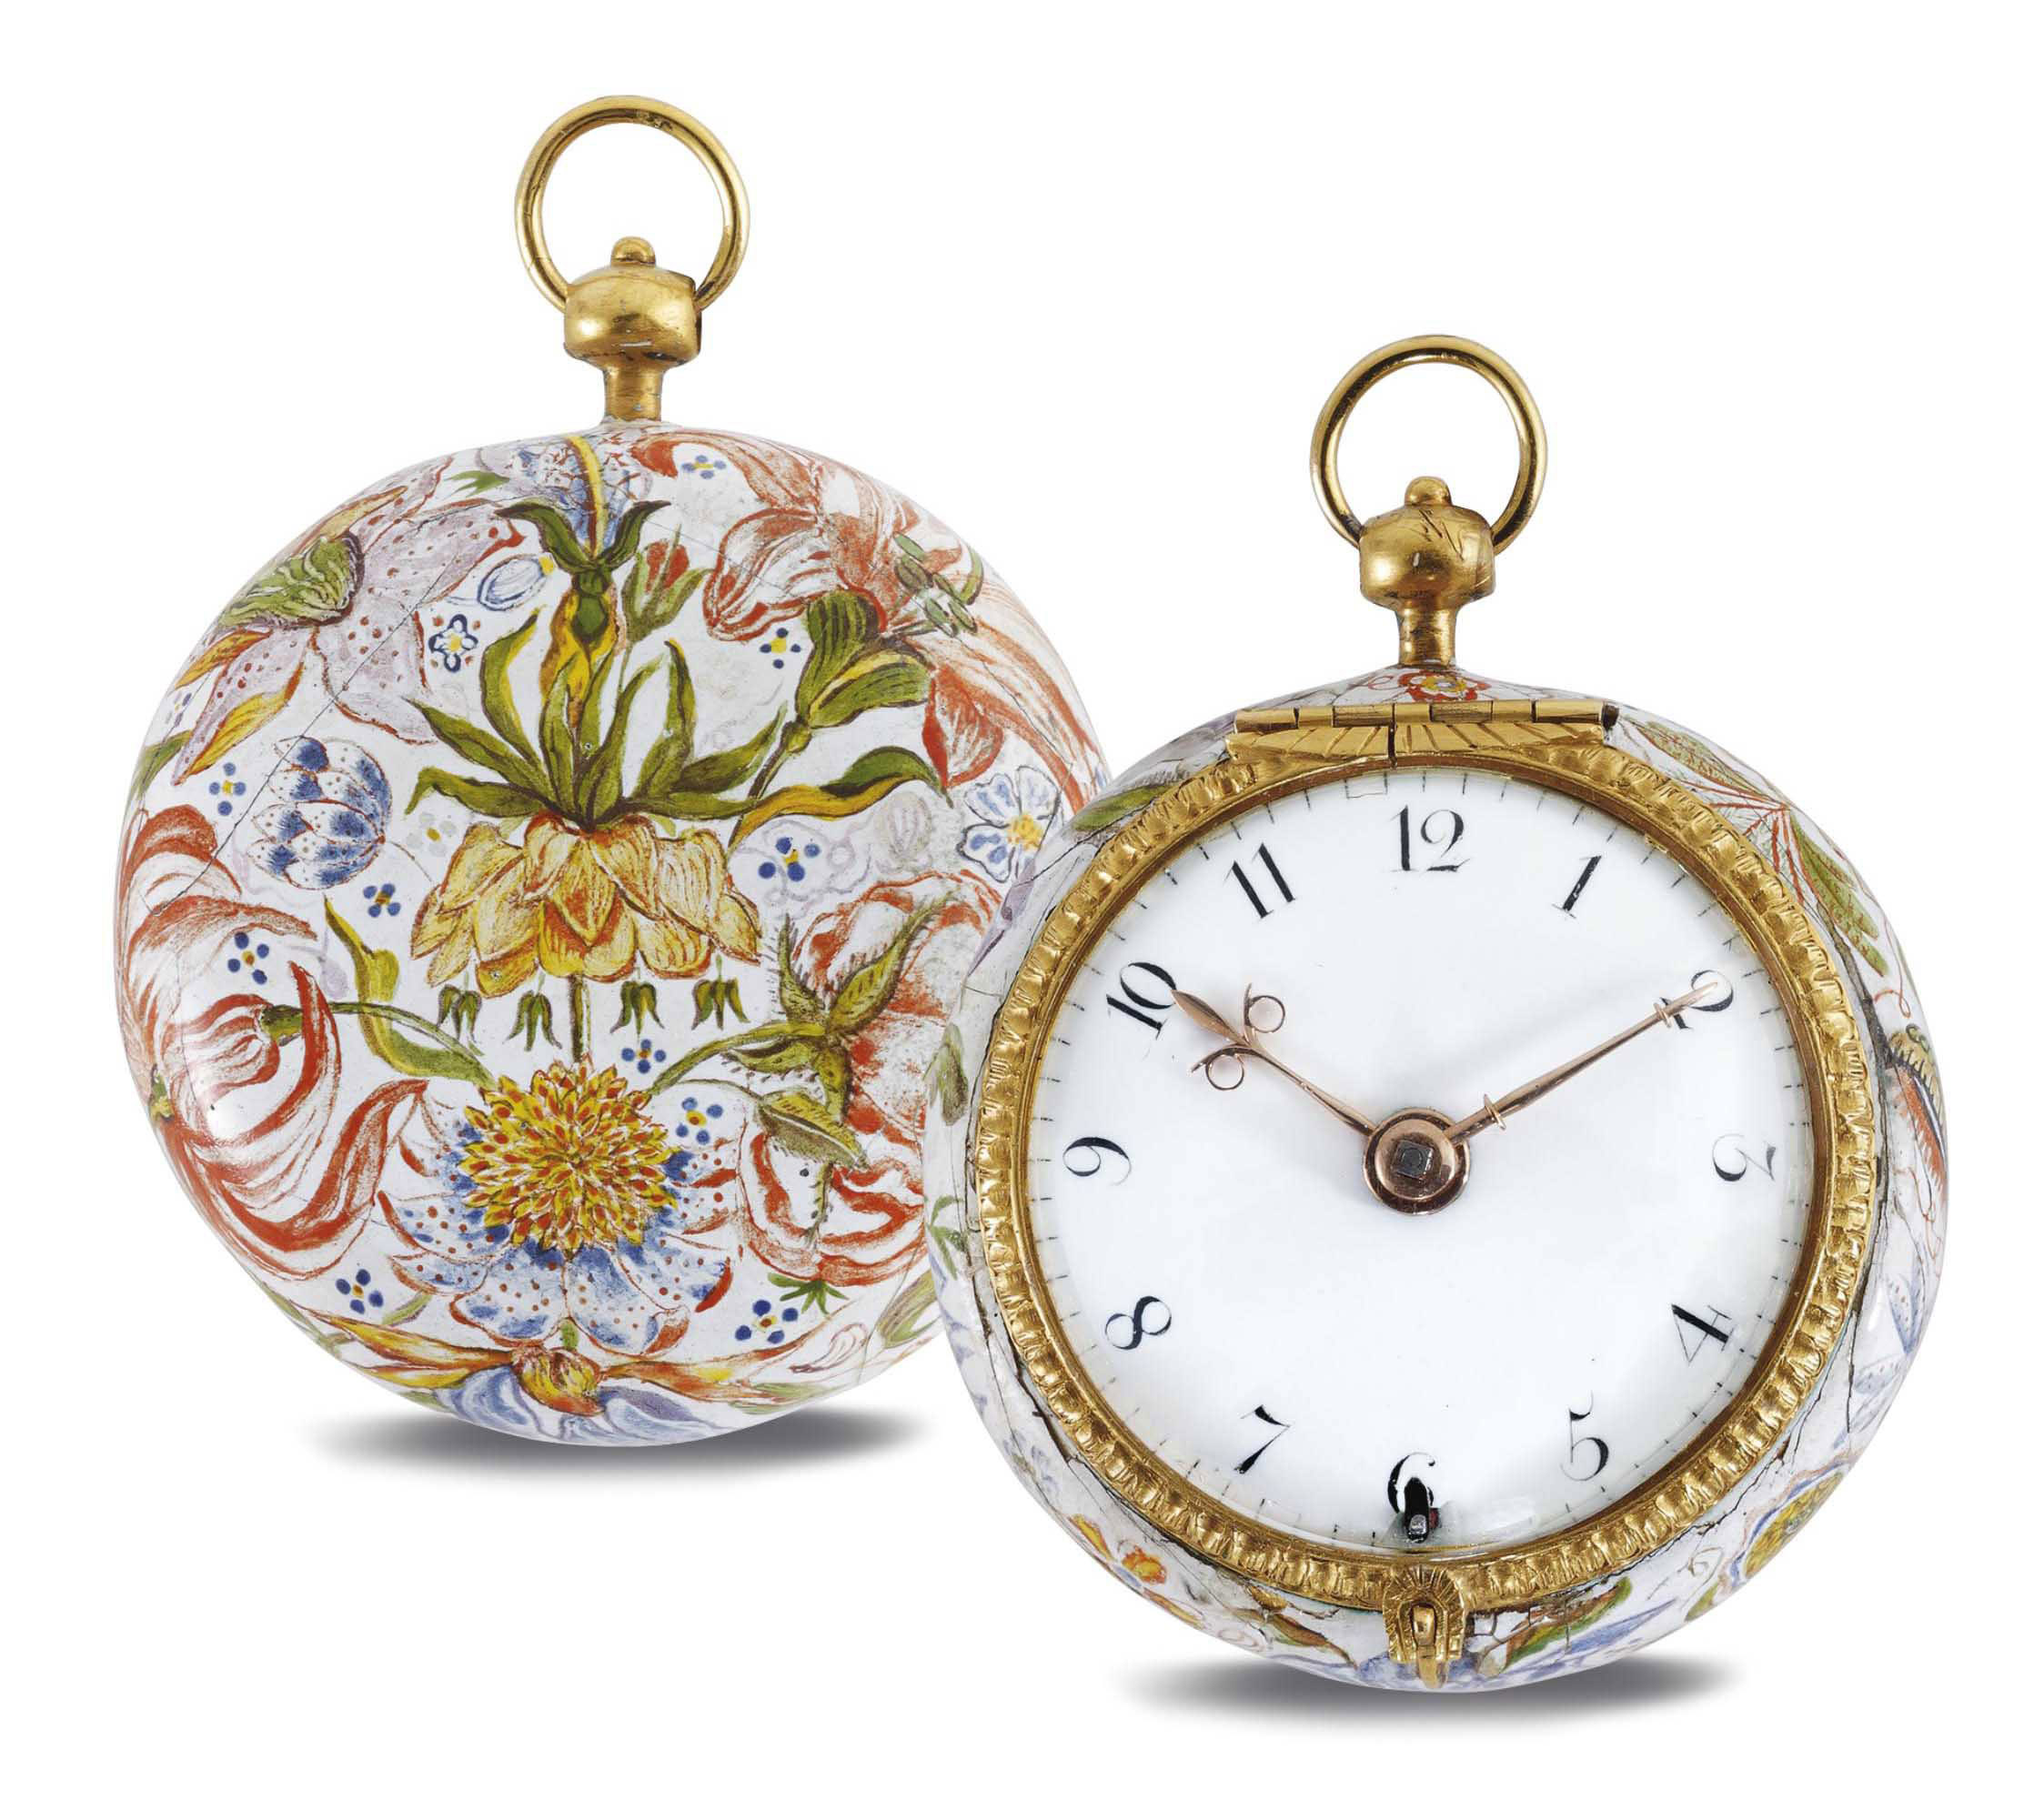 WEBSTER. A GOLD AND ENAMEL VERGE WATCH